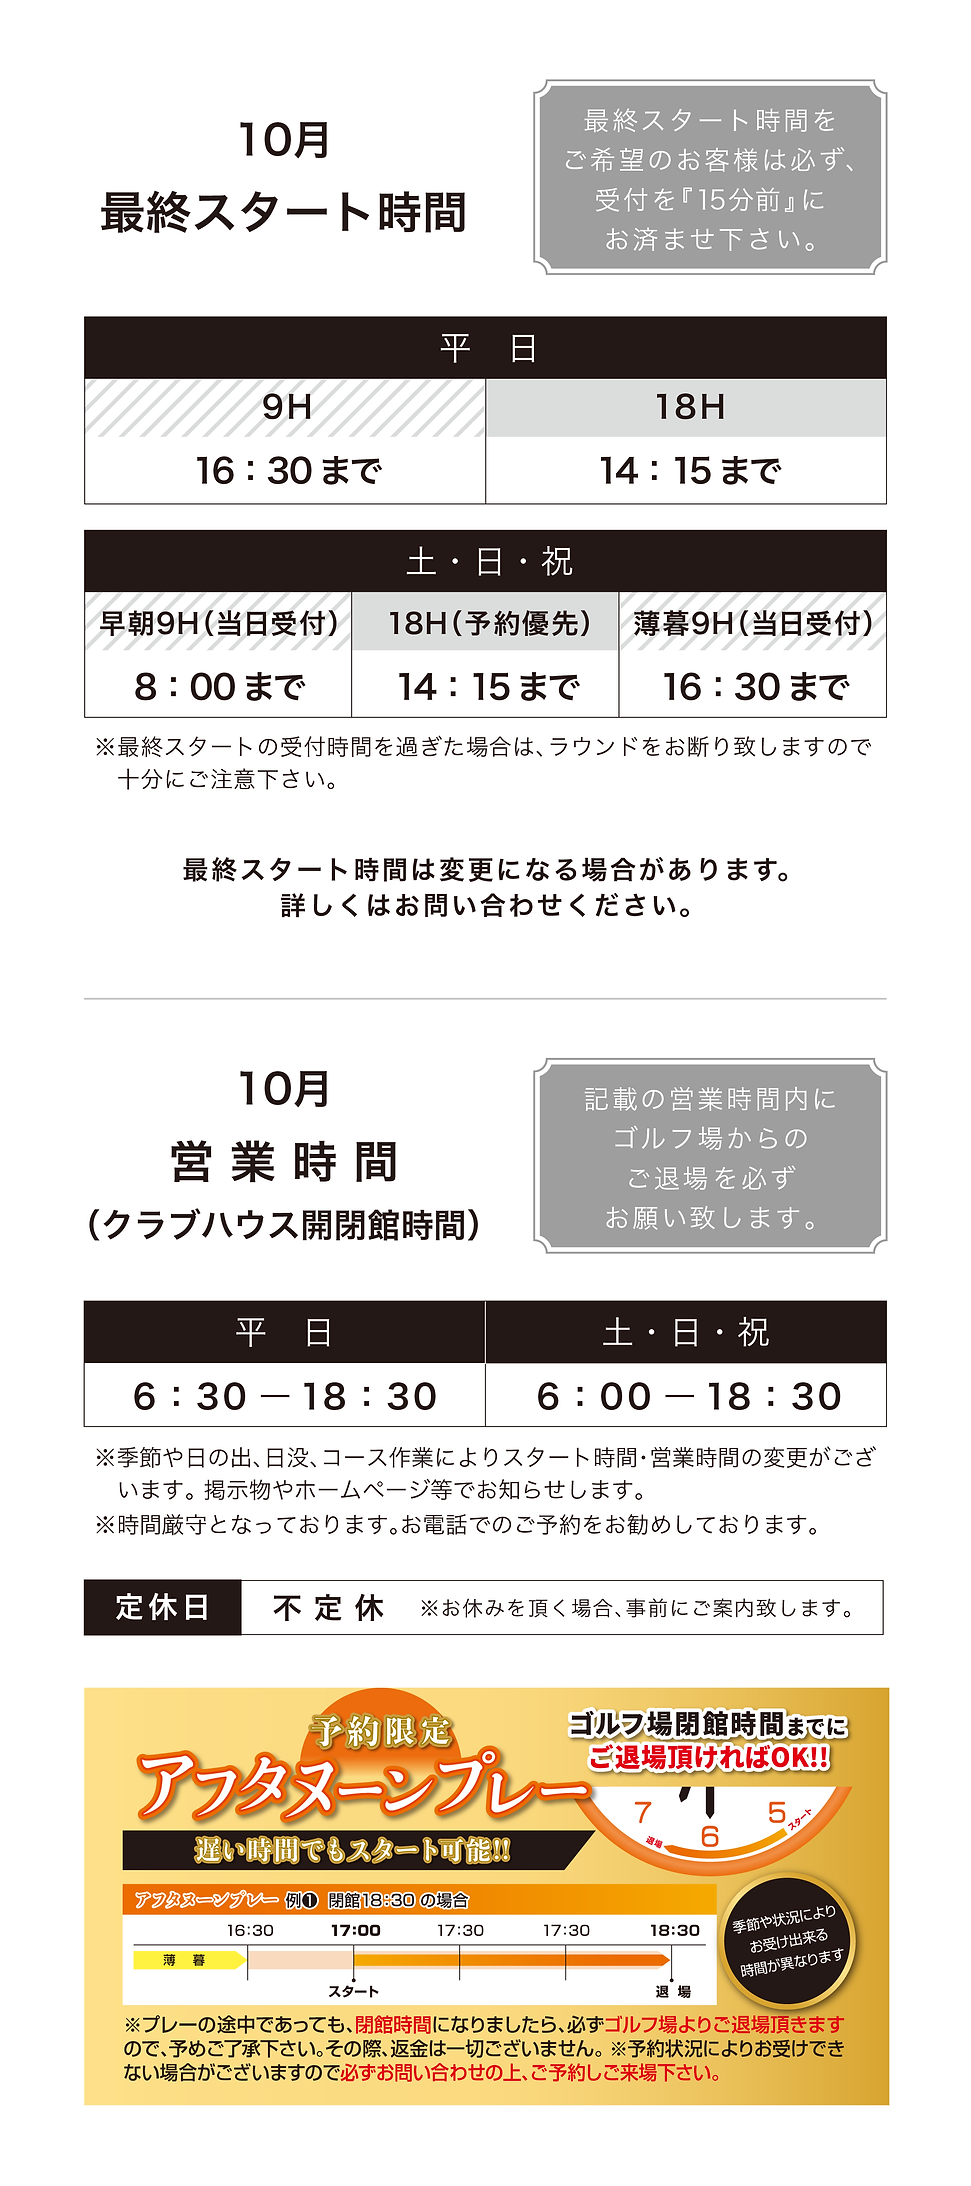 R2_コース案内Web用_10月-05.png